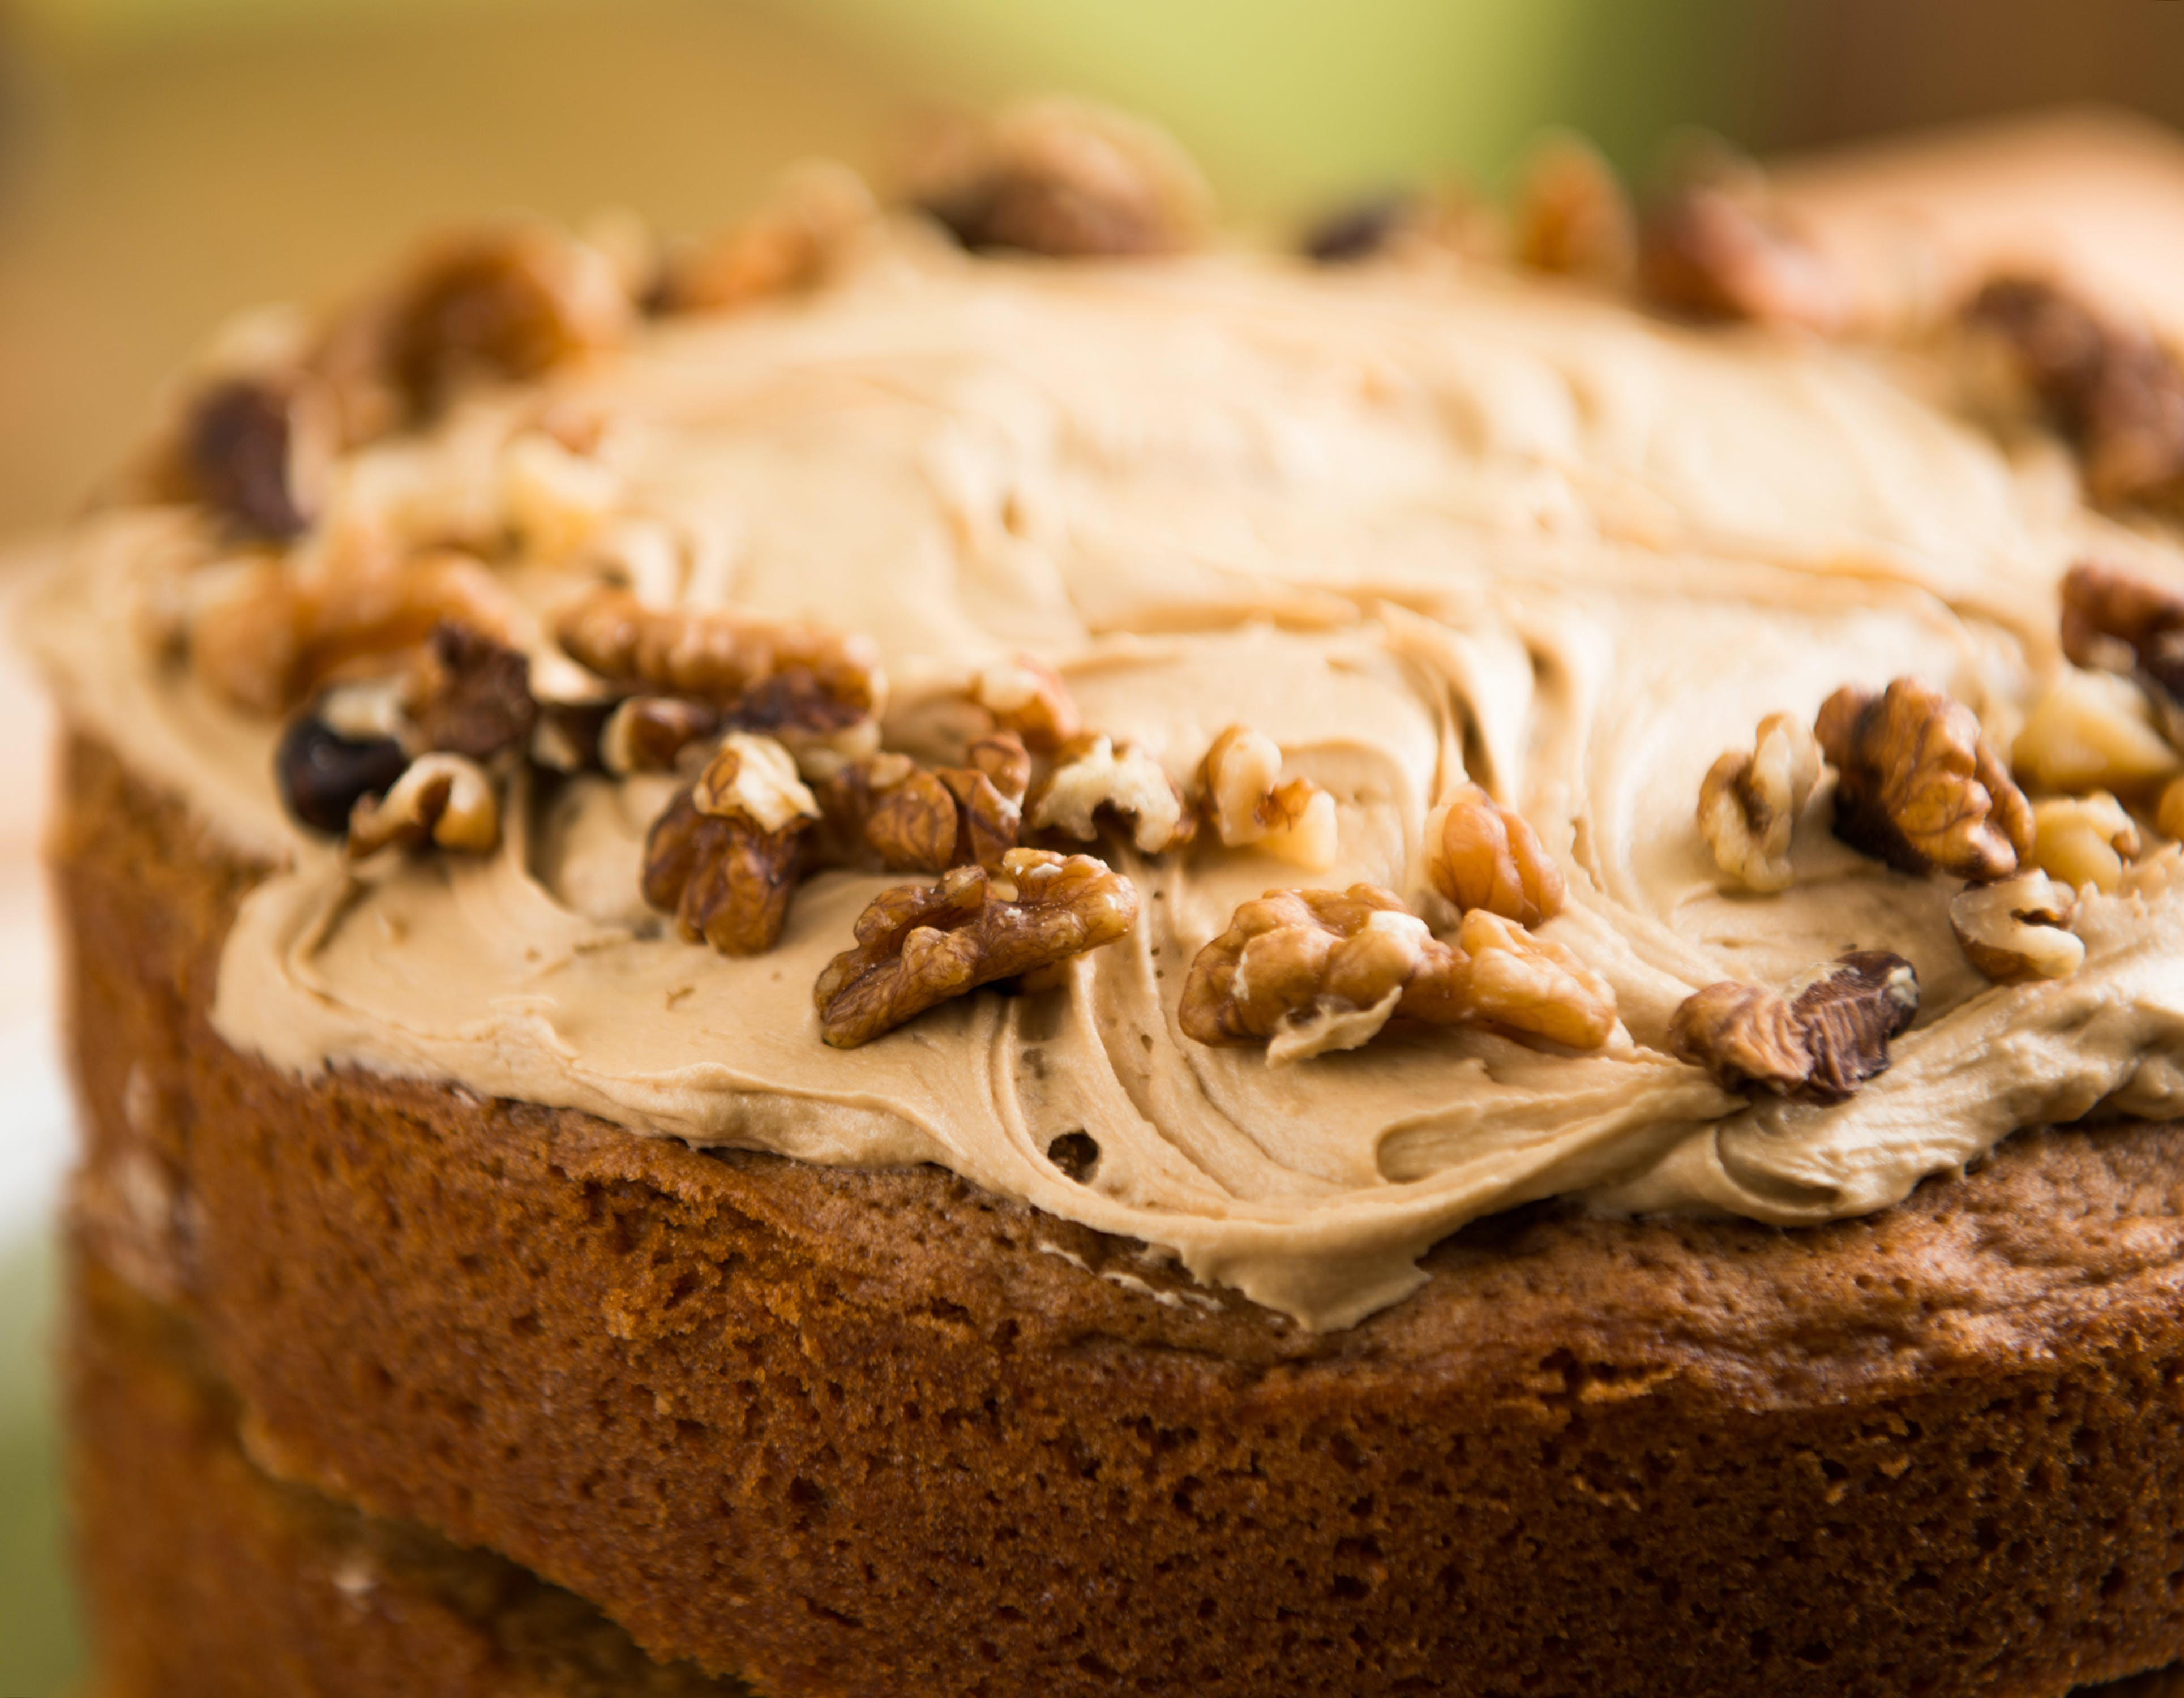 Close Up Shot of Brown Pastry